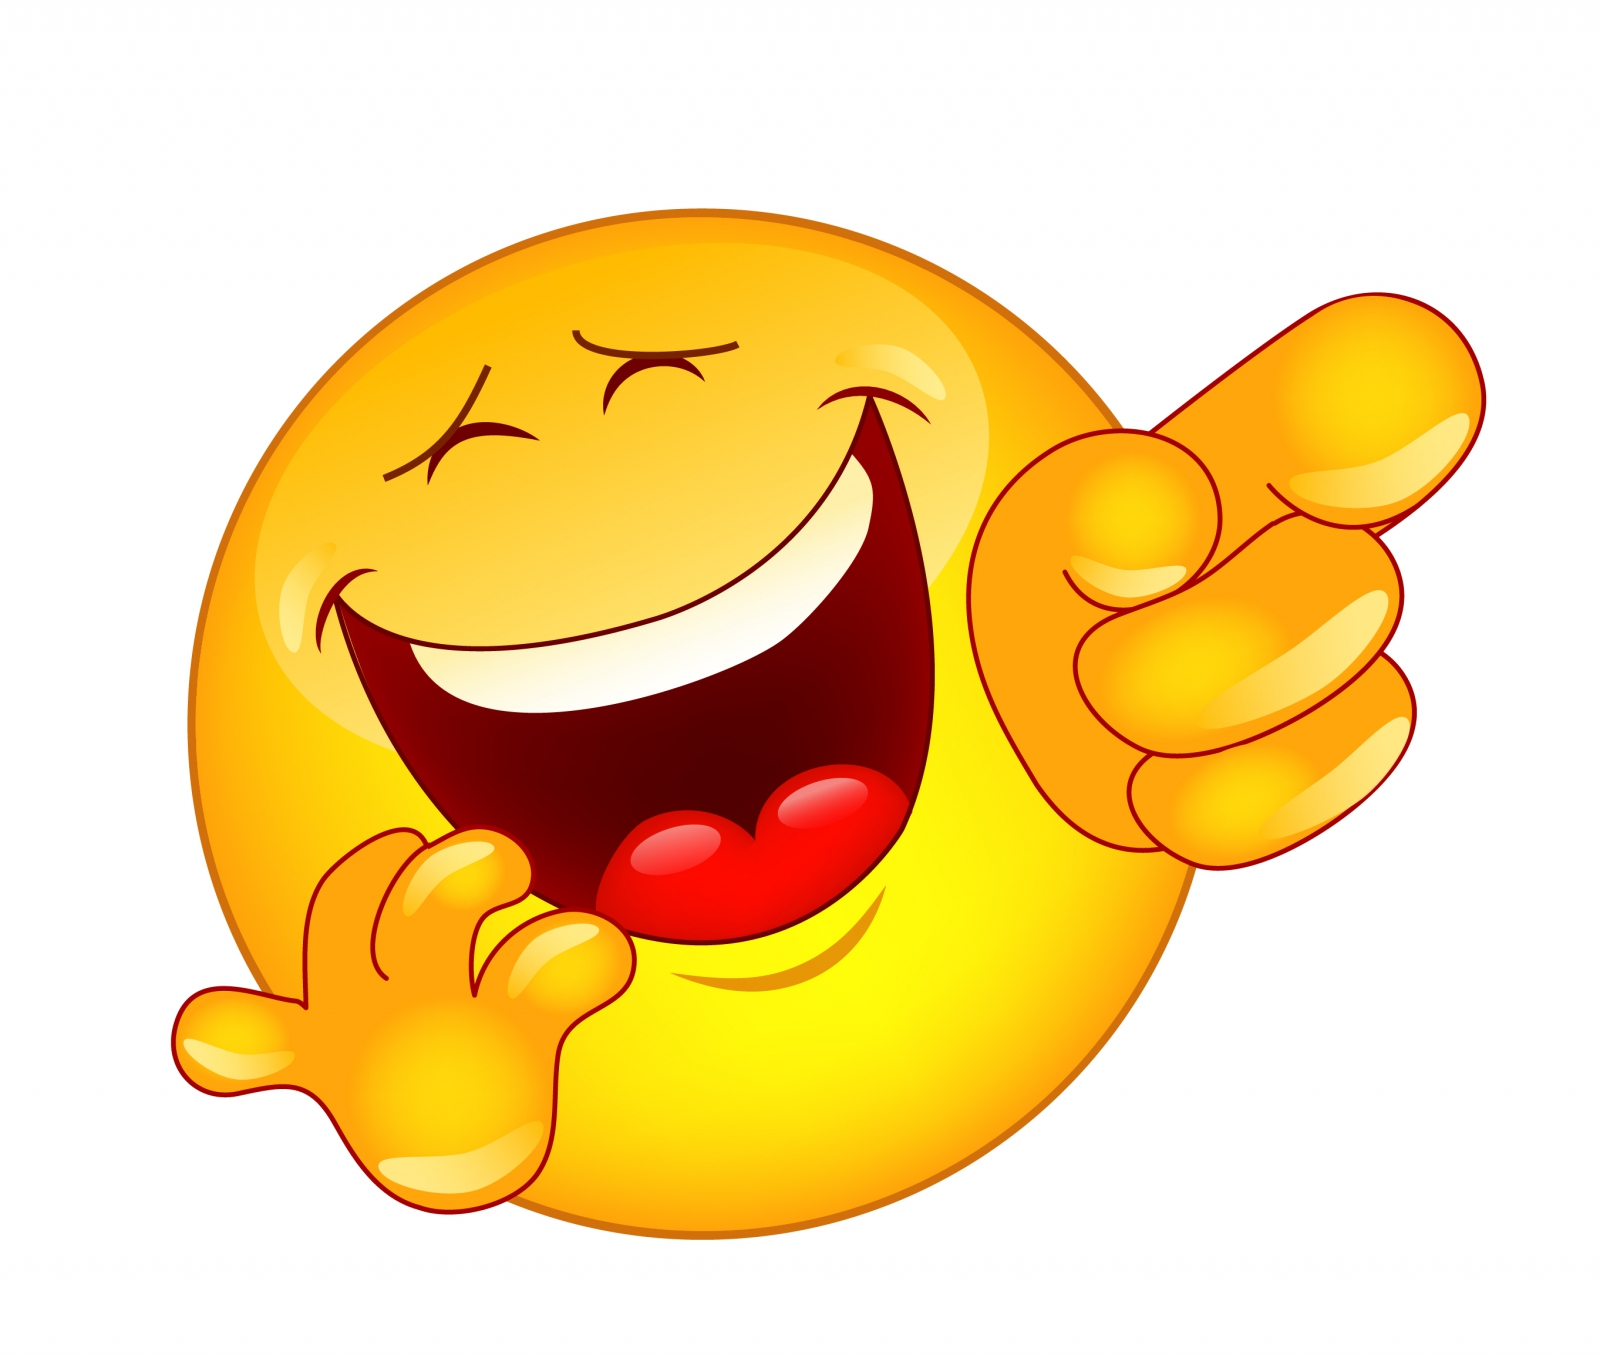 Laughing Face Clip Art - Clipartion.com